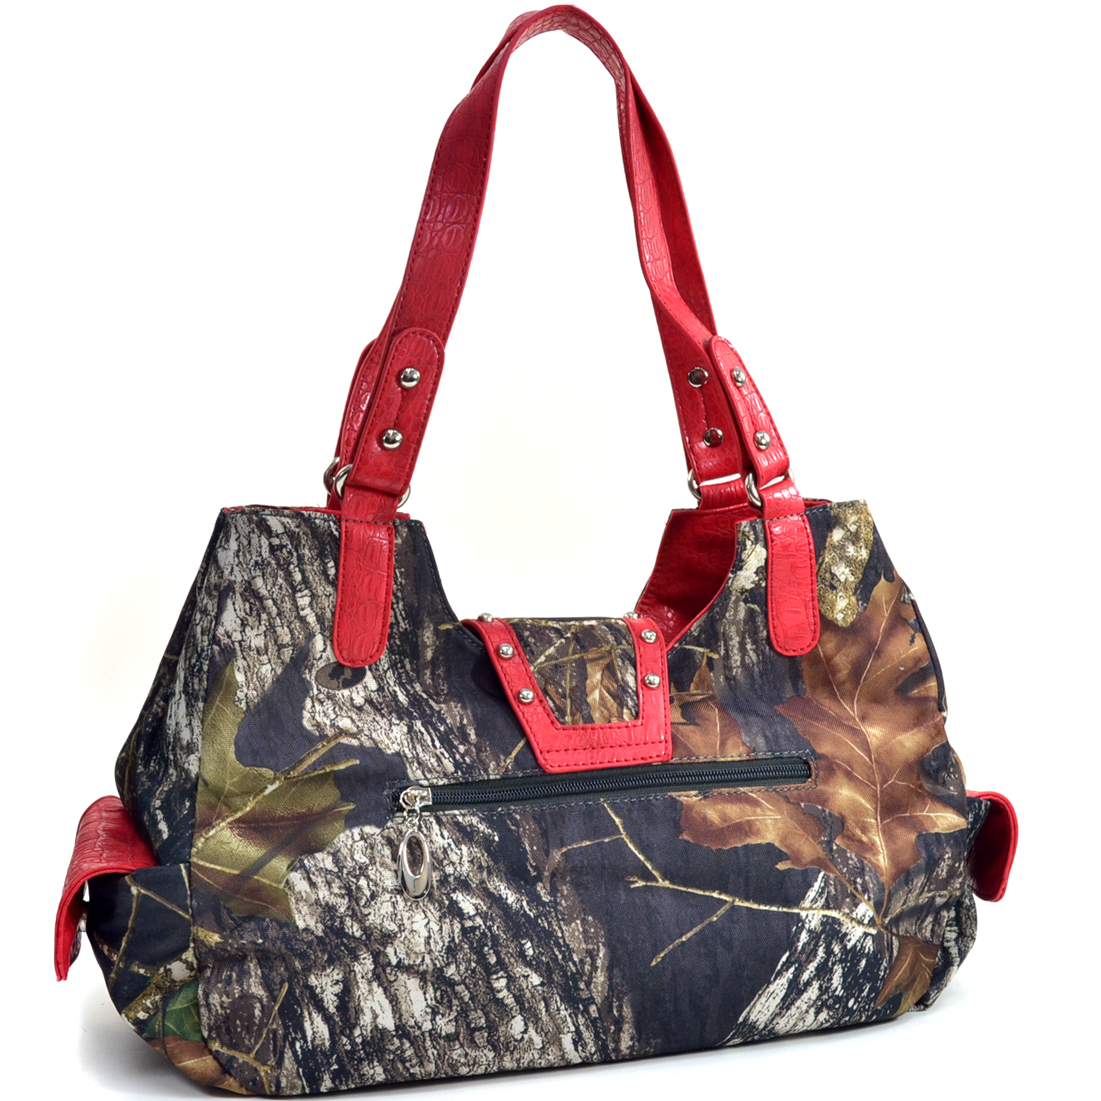 Mossy Oak® Studded Camouflage Shoulder Bag w/ Rhinestone Buckle